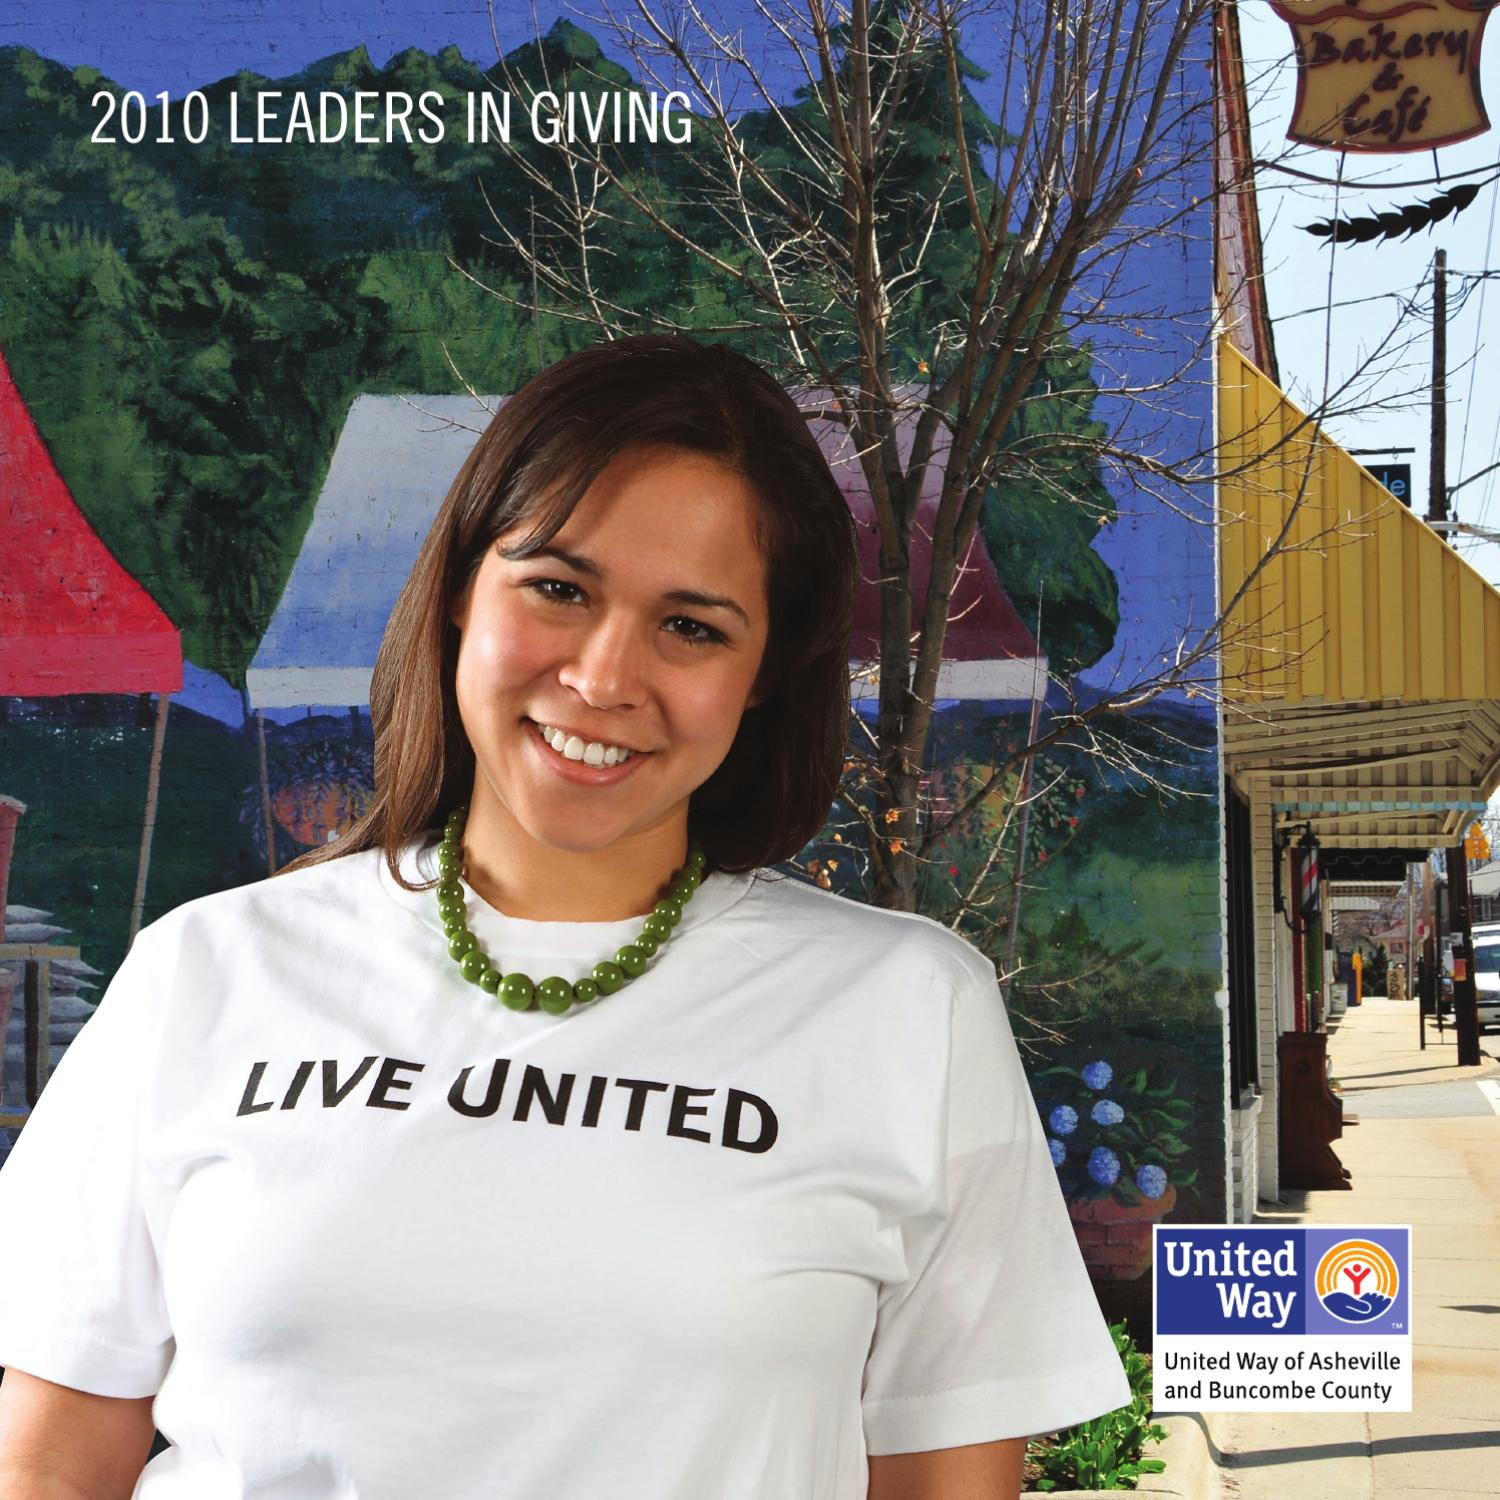 e97fb06e93f9 Leadership Giving 2009 by United Way of Asheville and Buncombe ...